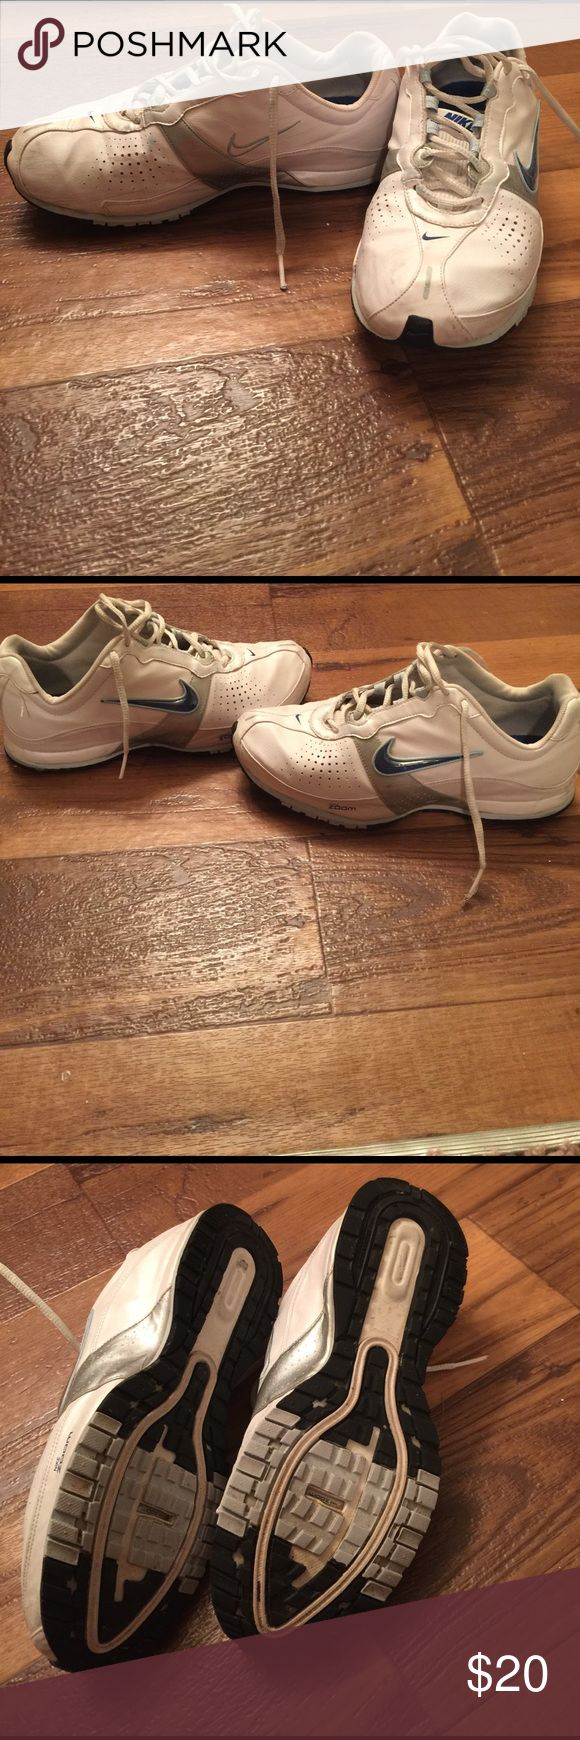 8 Nike Zoom Room Gym shoes 8 white Nike Zoom Run Gym Shoes.Good condition and are very comfortable... Nike Shoes Athletic Shoes